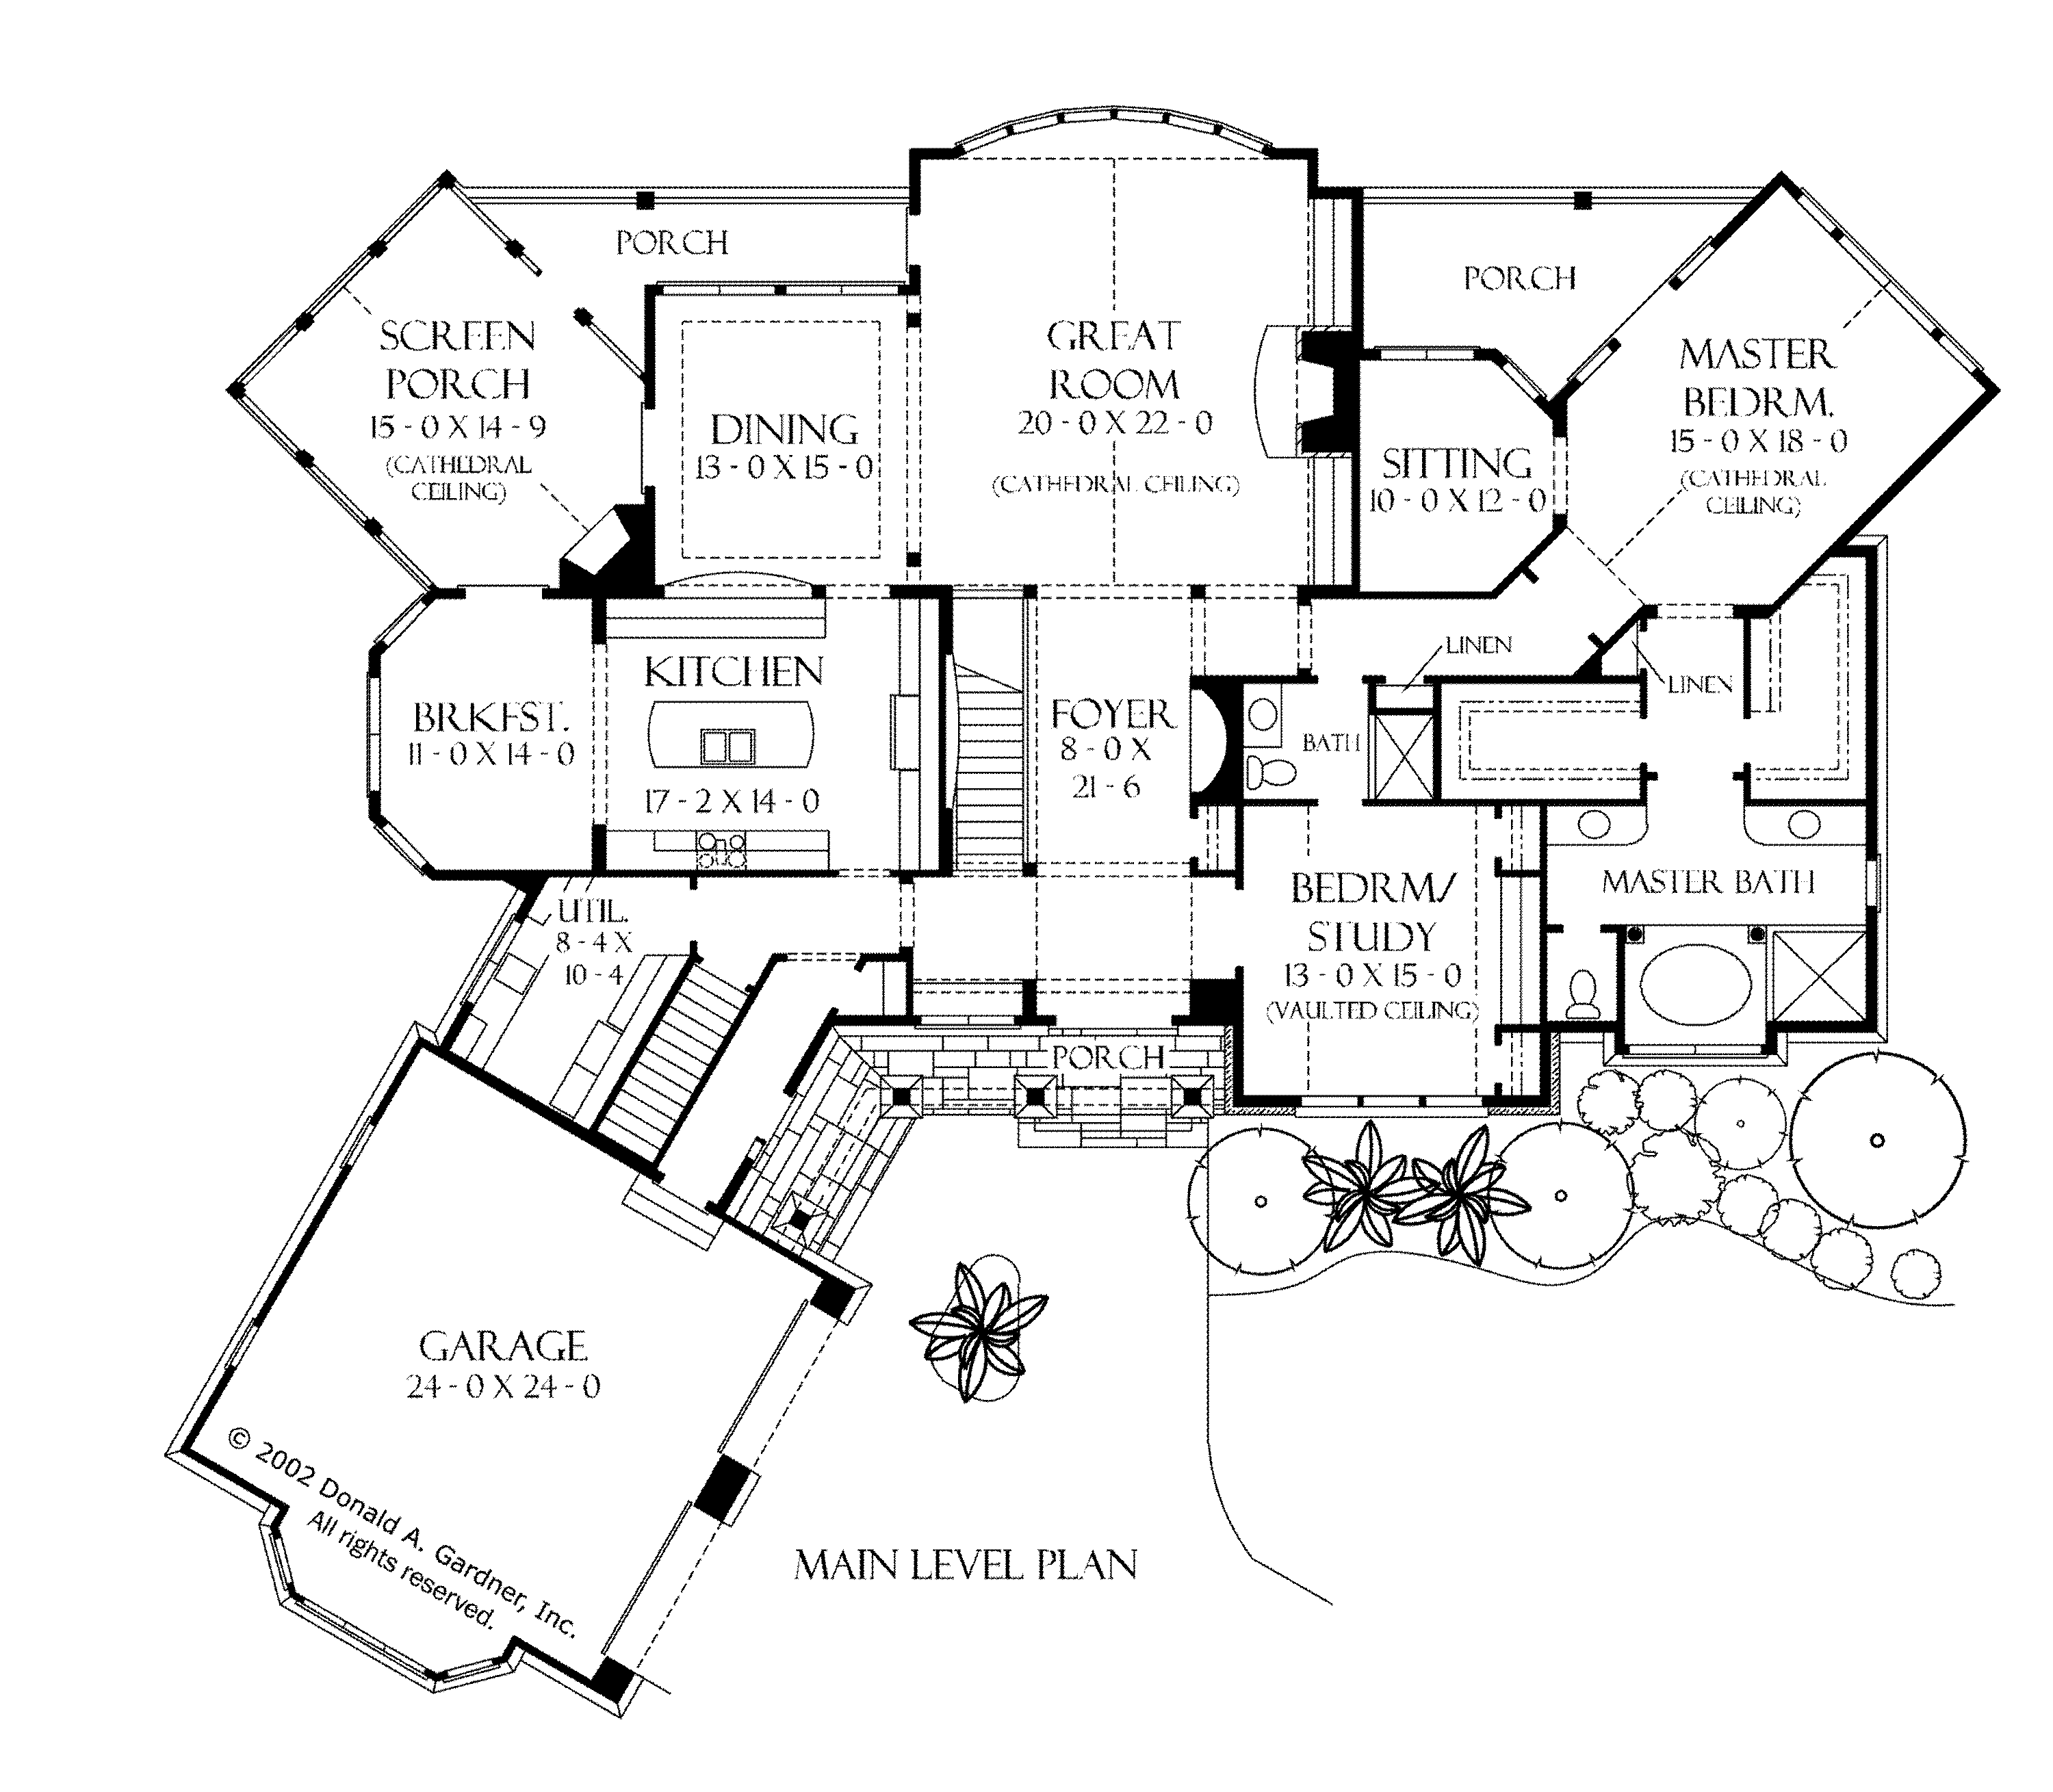 Architecture craftsman style homes floor plans story for Design your own house blueprints